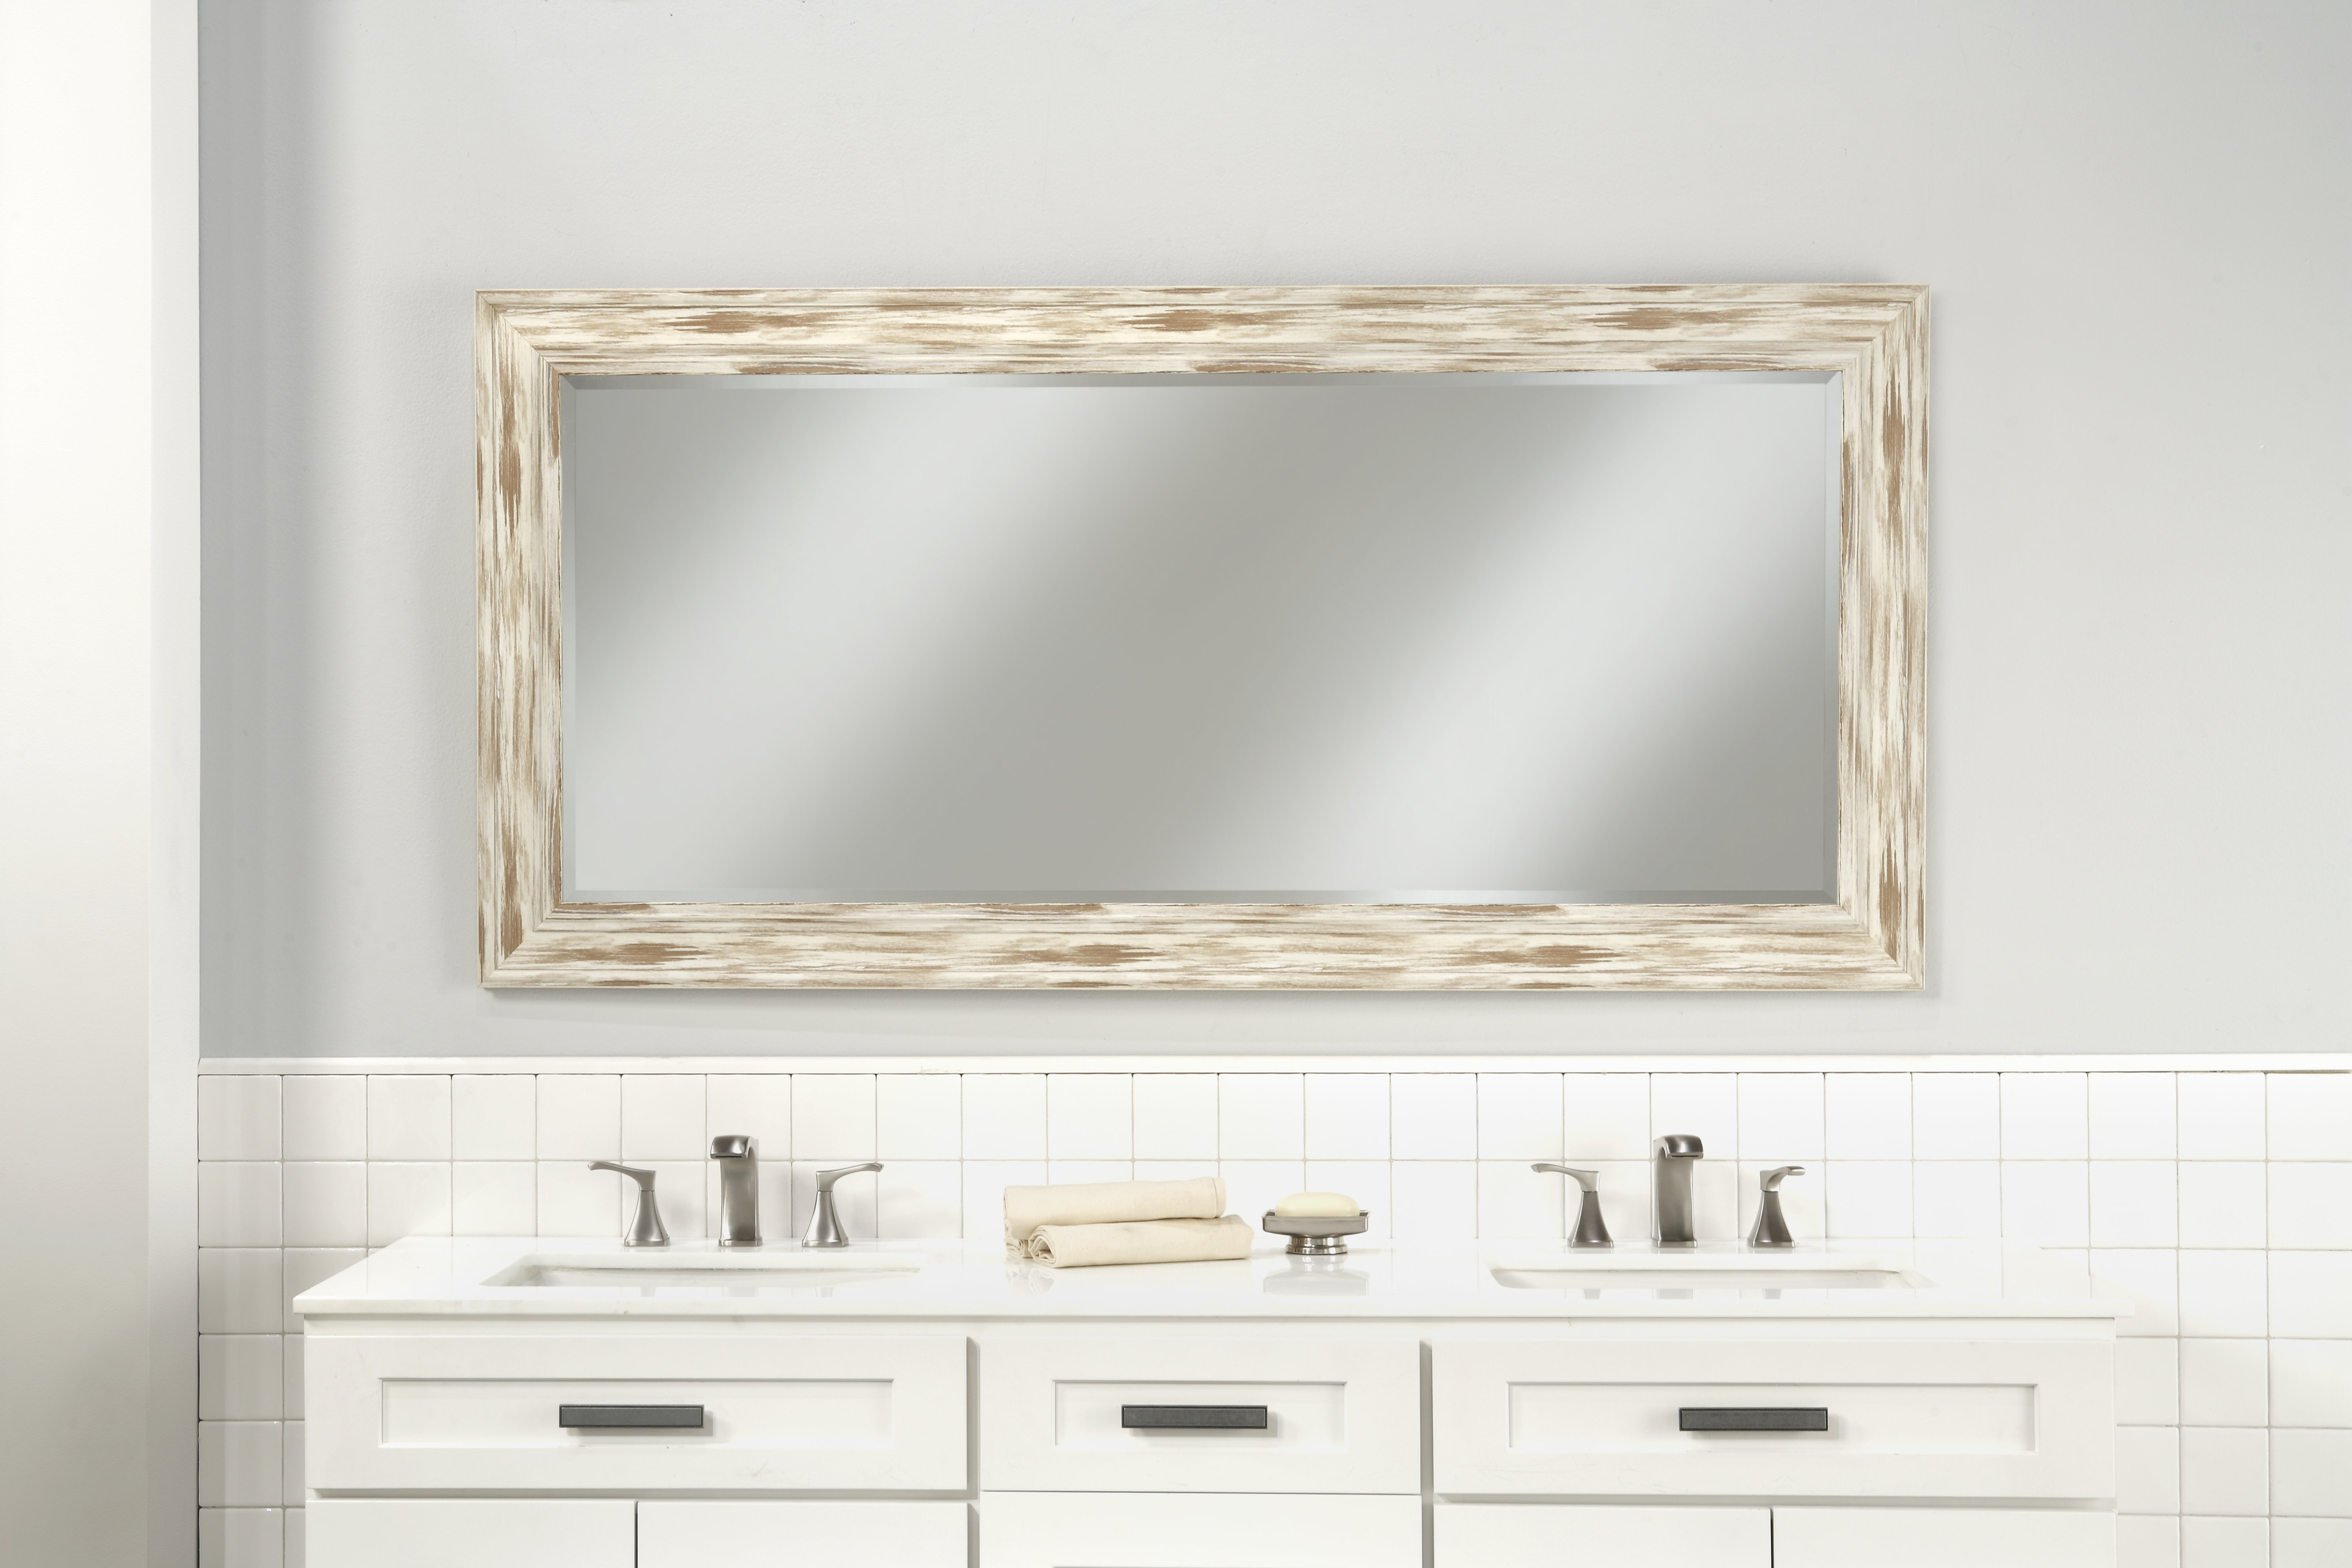 Farmhouse & Rustic Three Posts Wall & Accent Mirrors | Birch Throughout Moseley Accent Mirrors (View 11 of 20)